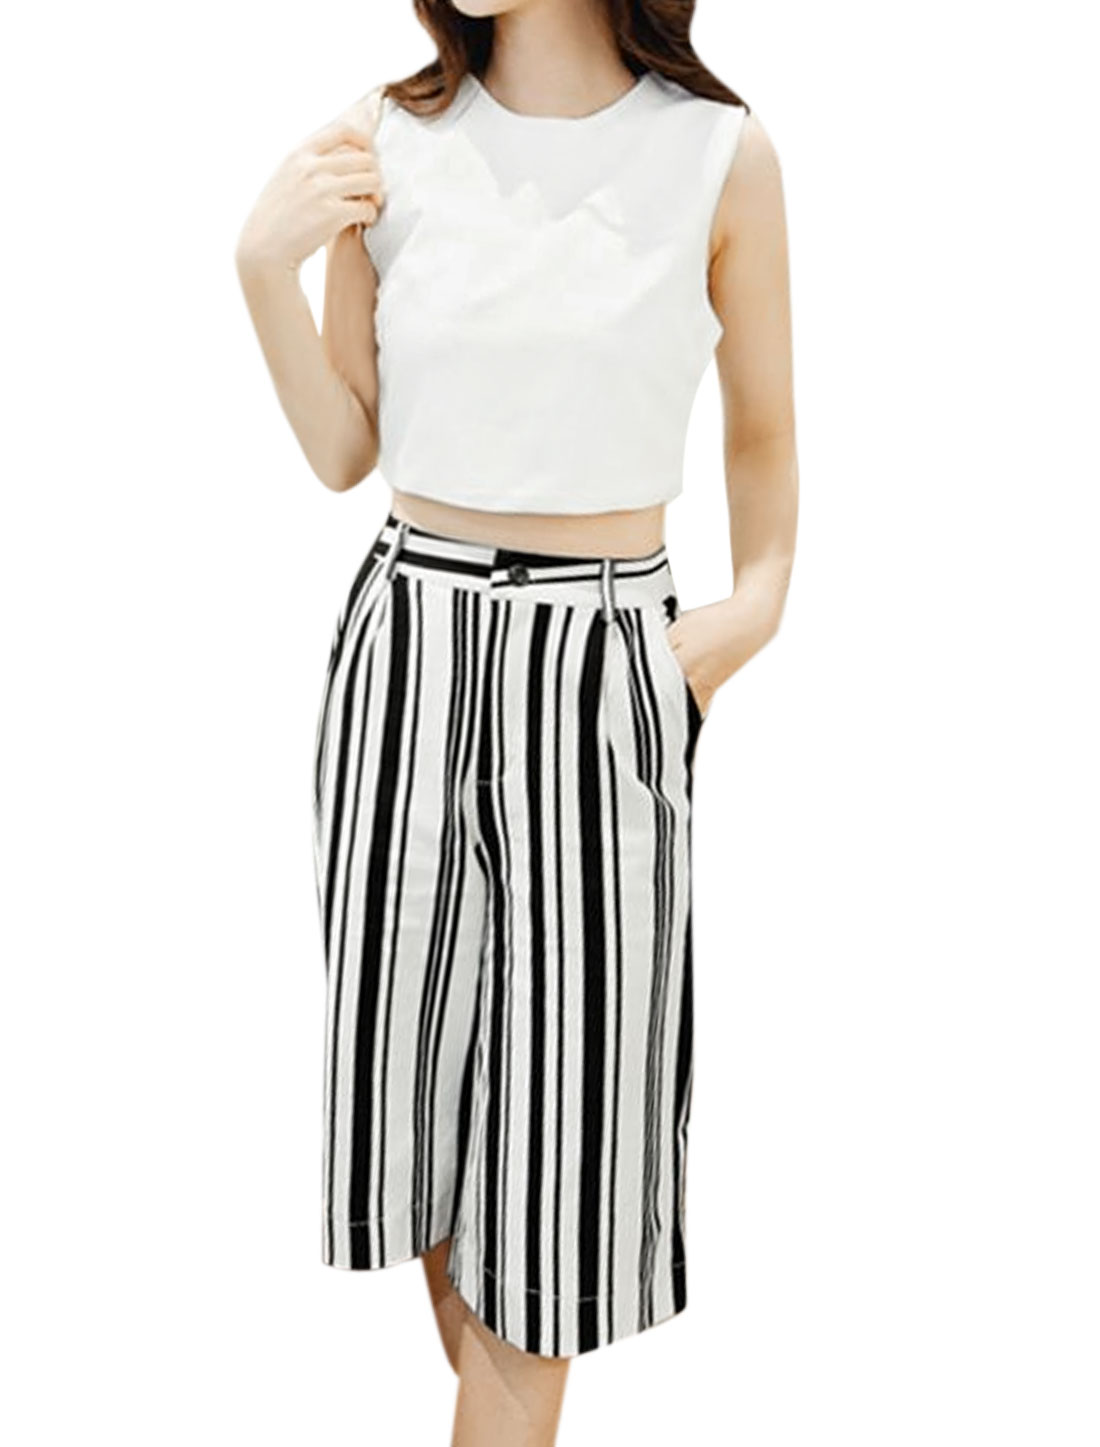 Woman Zipper Back Crop Top w Stripes Wide Leg Pants Sets White Black S